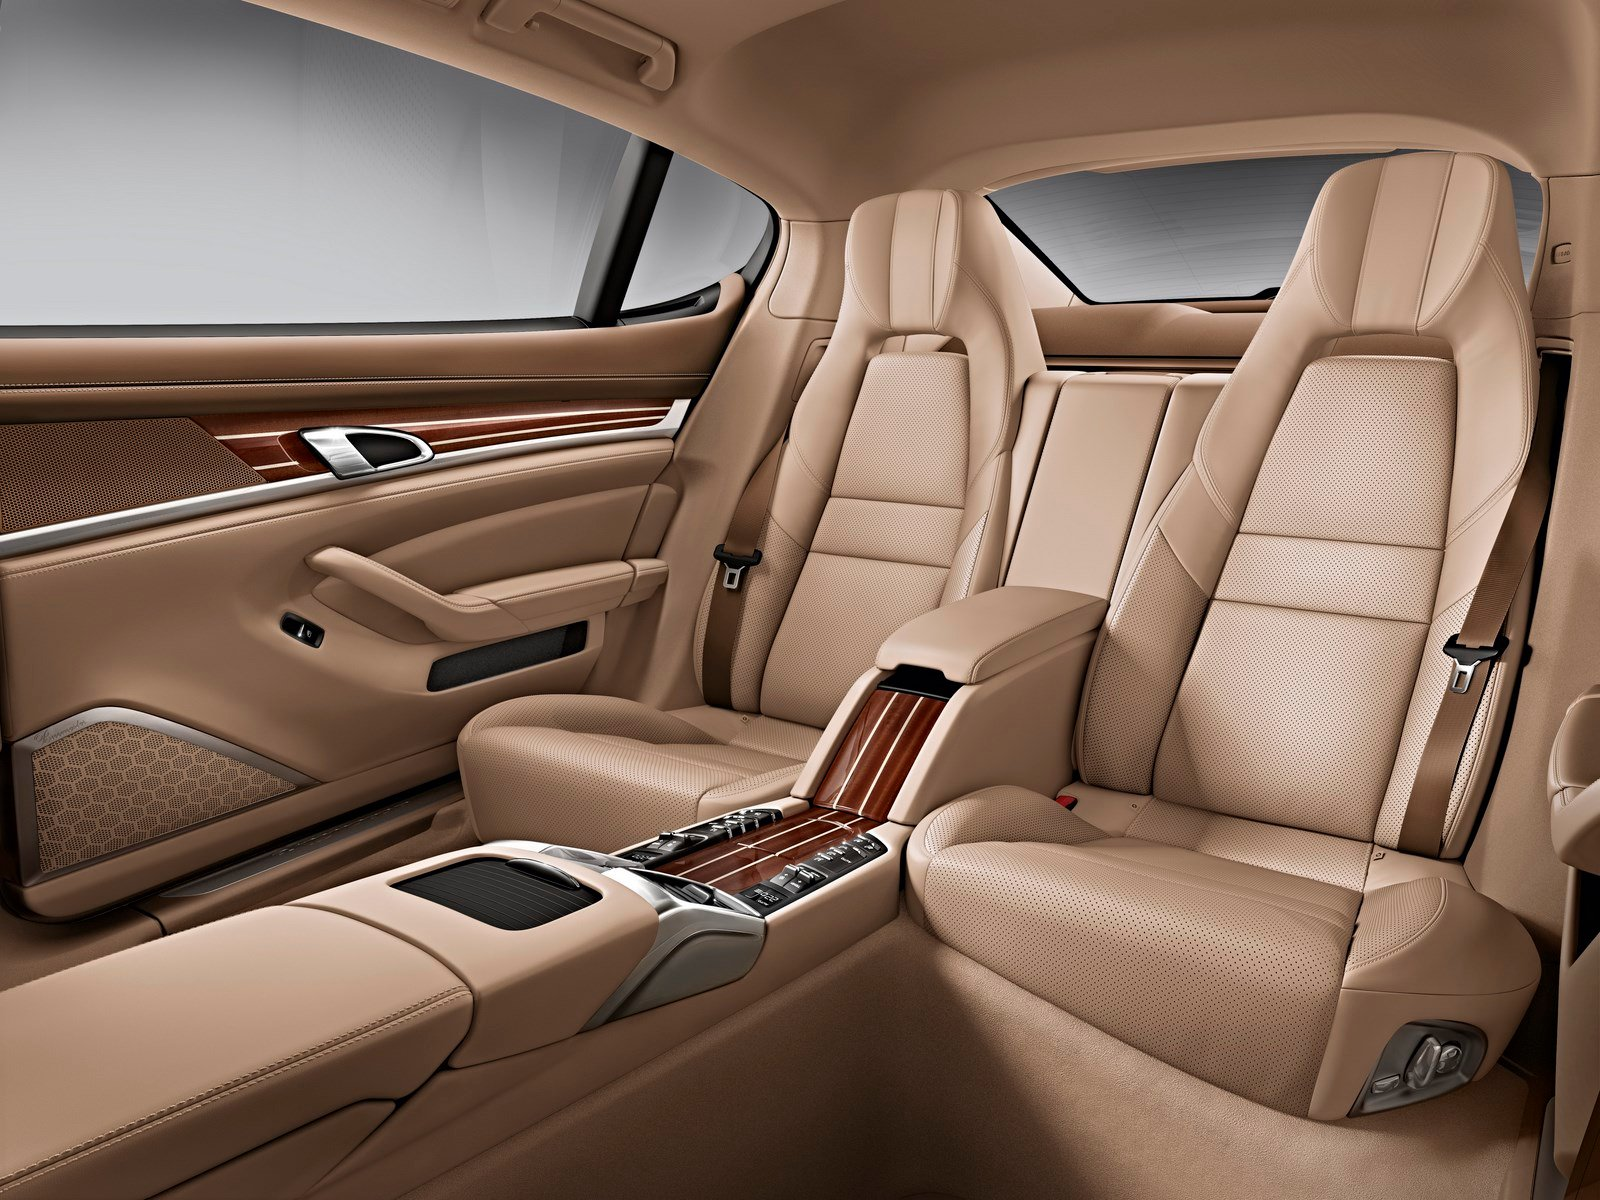 Aside From The Extra Space Provided Inside Of New Executive Models 2014 Panameras Interior Is Largely Unchanged Last Year